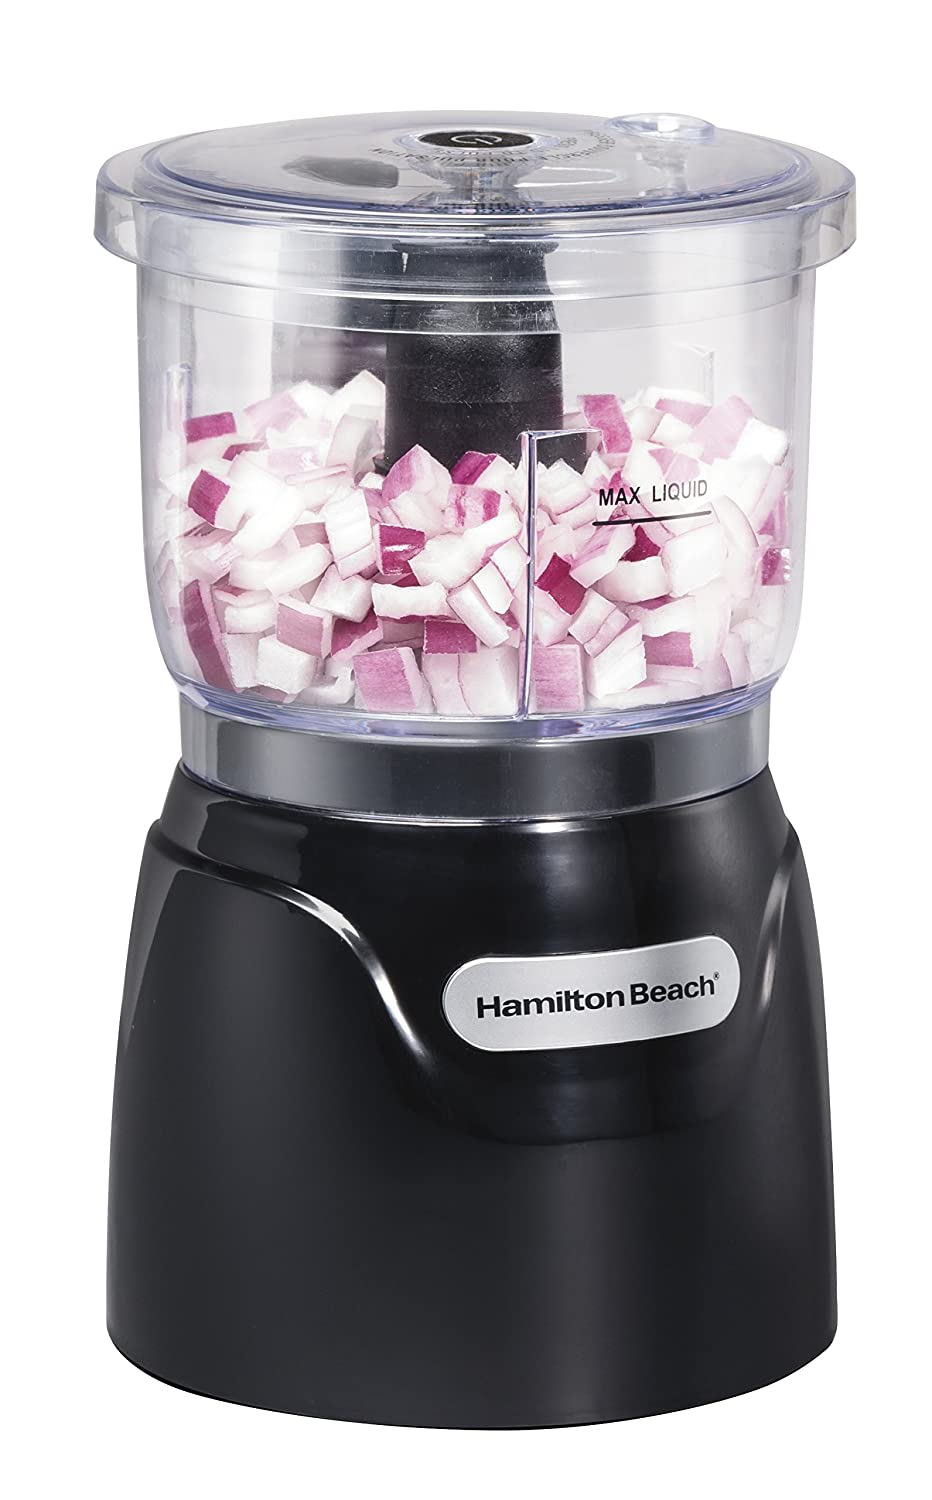 Hamilton Beach Mini 3-Cup Food Processor Vegetable Chopper, 350 Watts, for Dicing, Mincing, and Puree, Black 72850